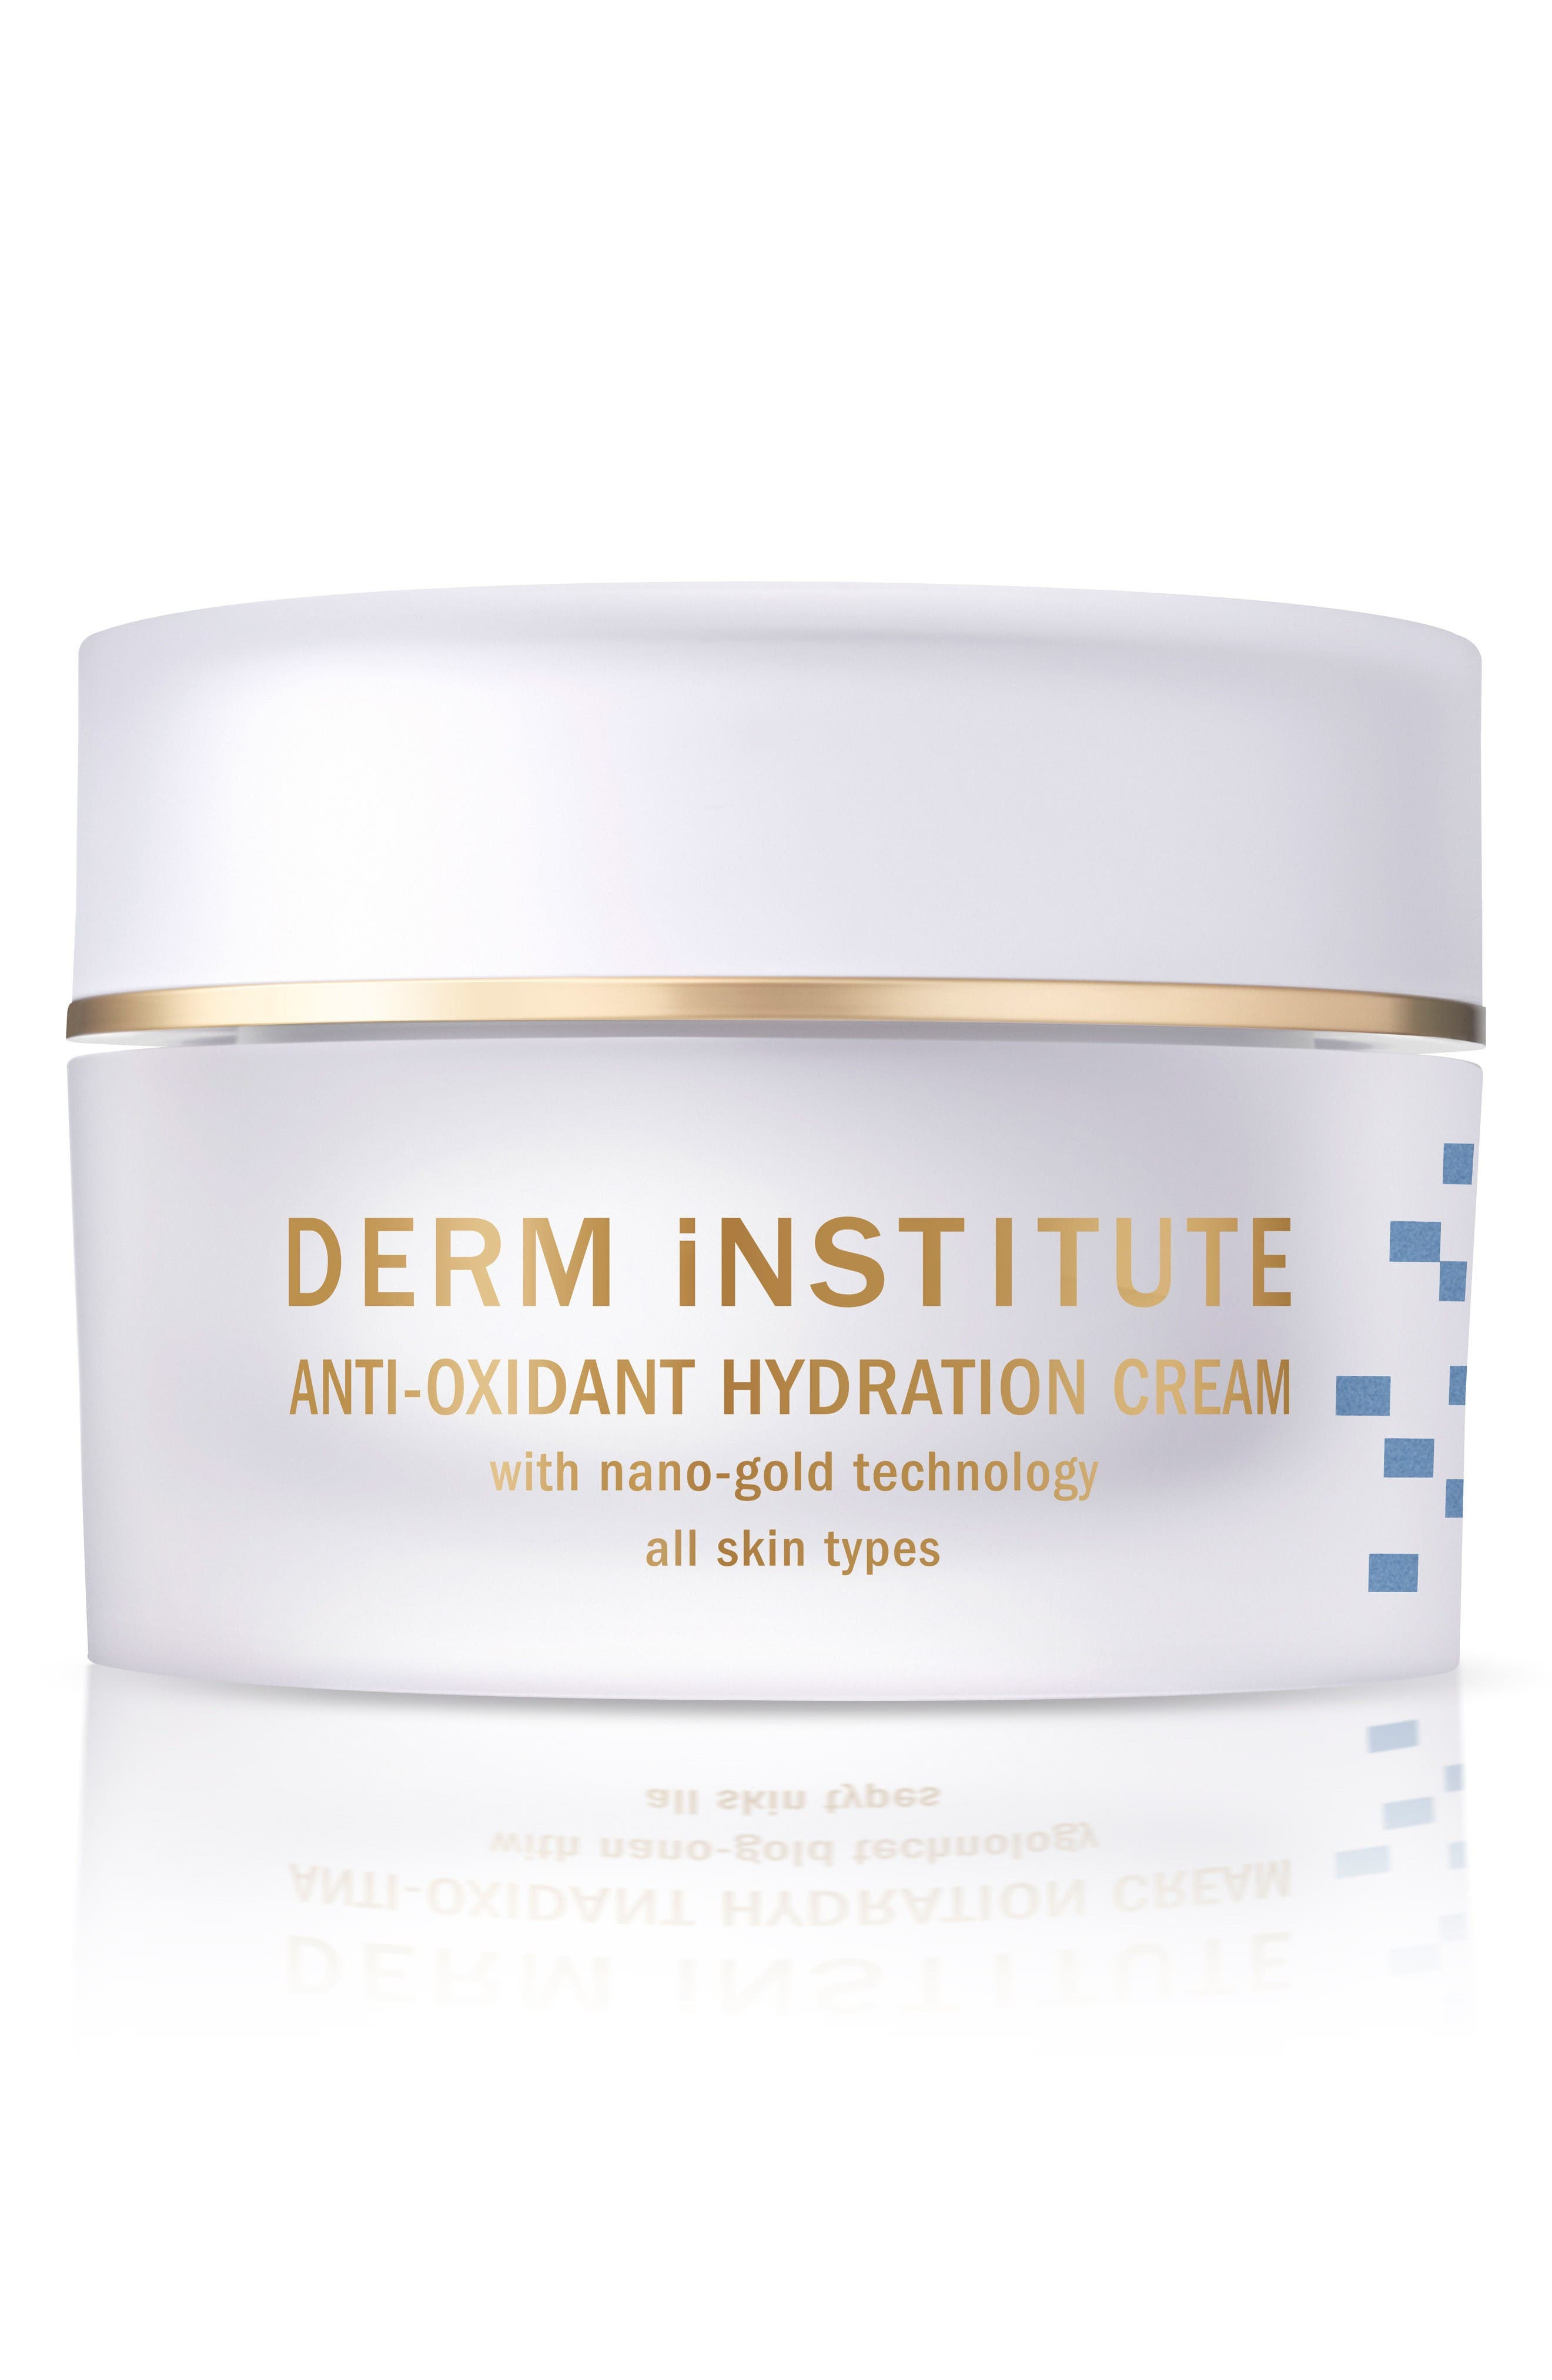 Alternate Image 1 Selected - SPACE.NK.apothecary Derm Institute Anti-Oxidant Hydration Cream